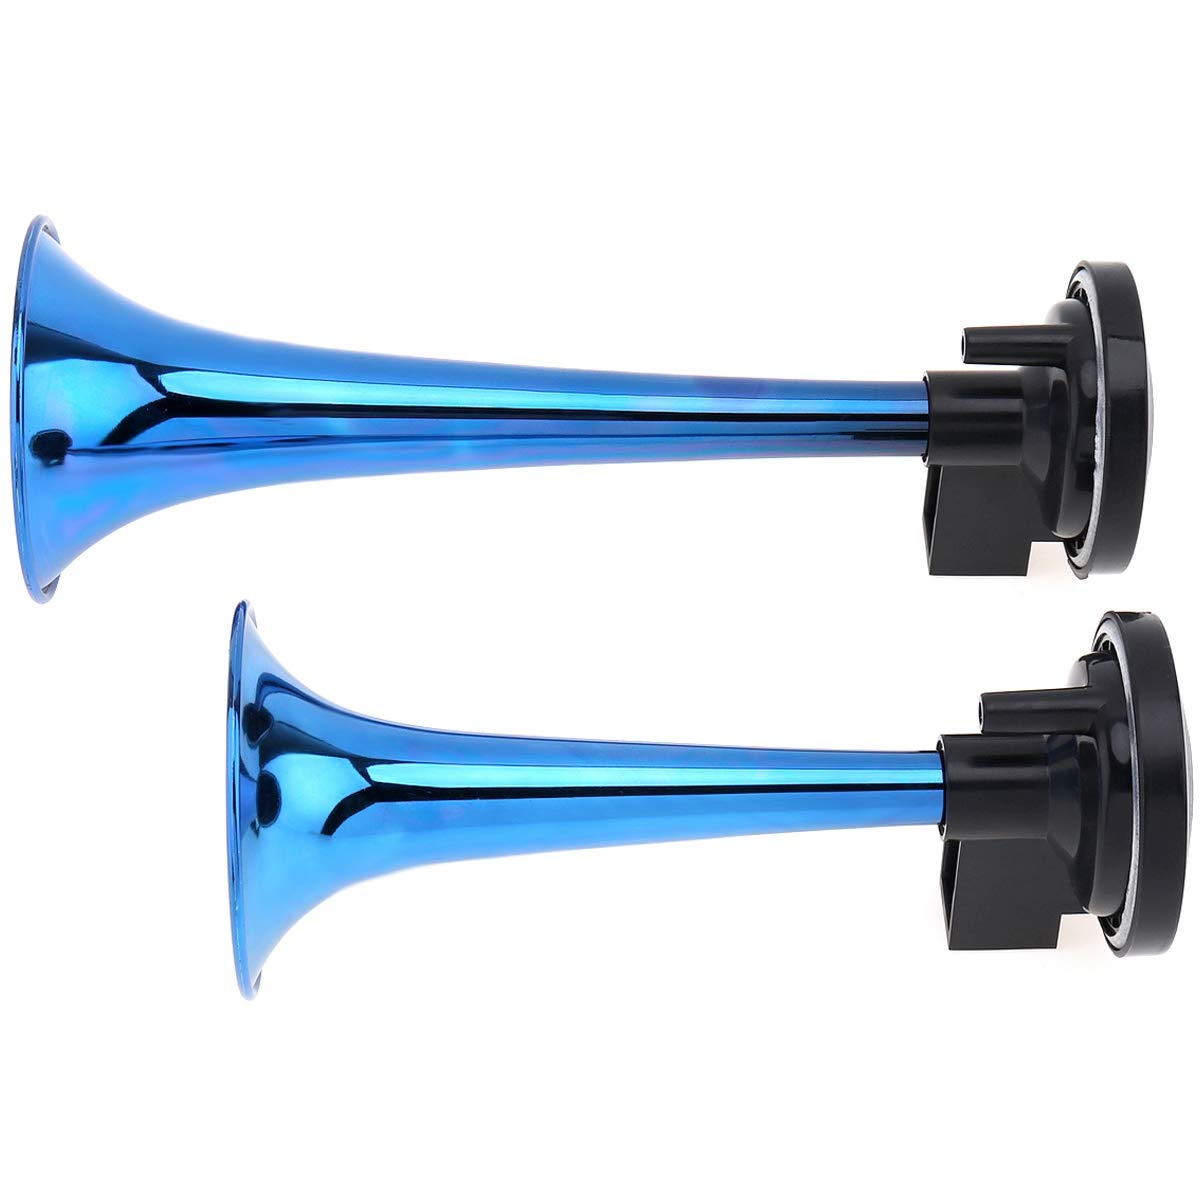 TOOGOO 178Db Super Loud 12V Dual Tone Auto Car Air Claxon Horn High Output Compressor Set Trumpet For Motorcycle Boat Truck